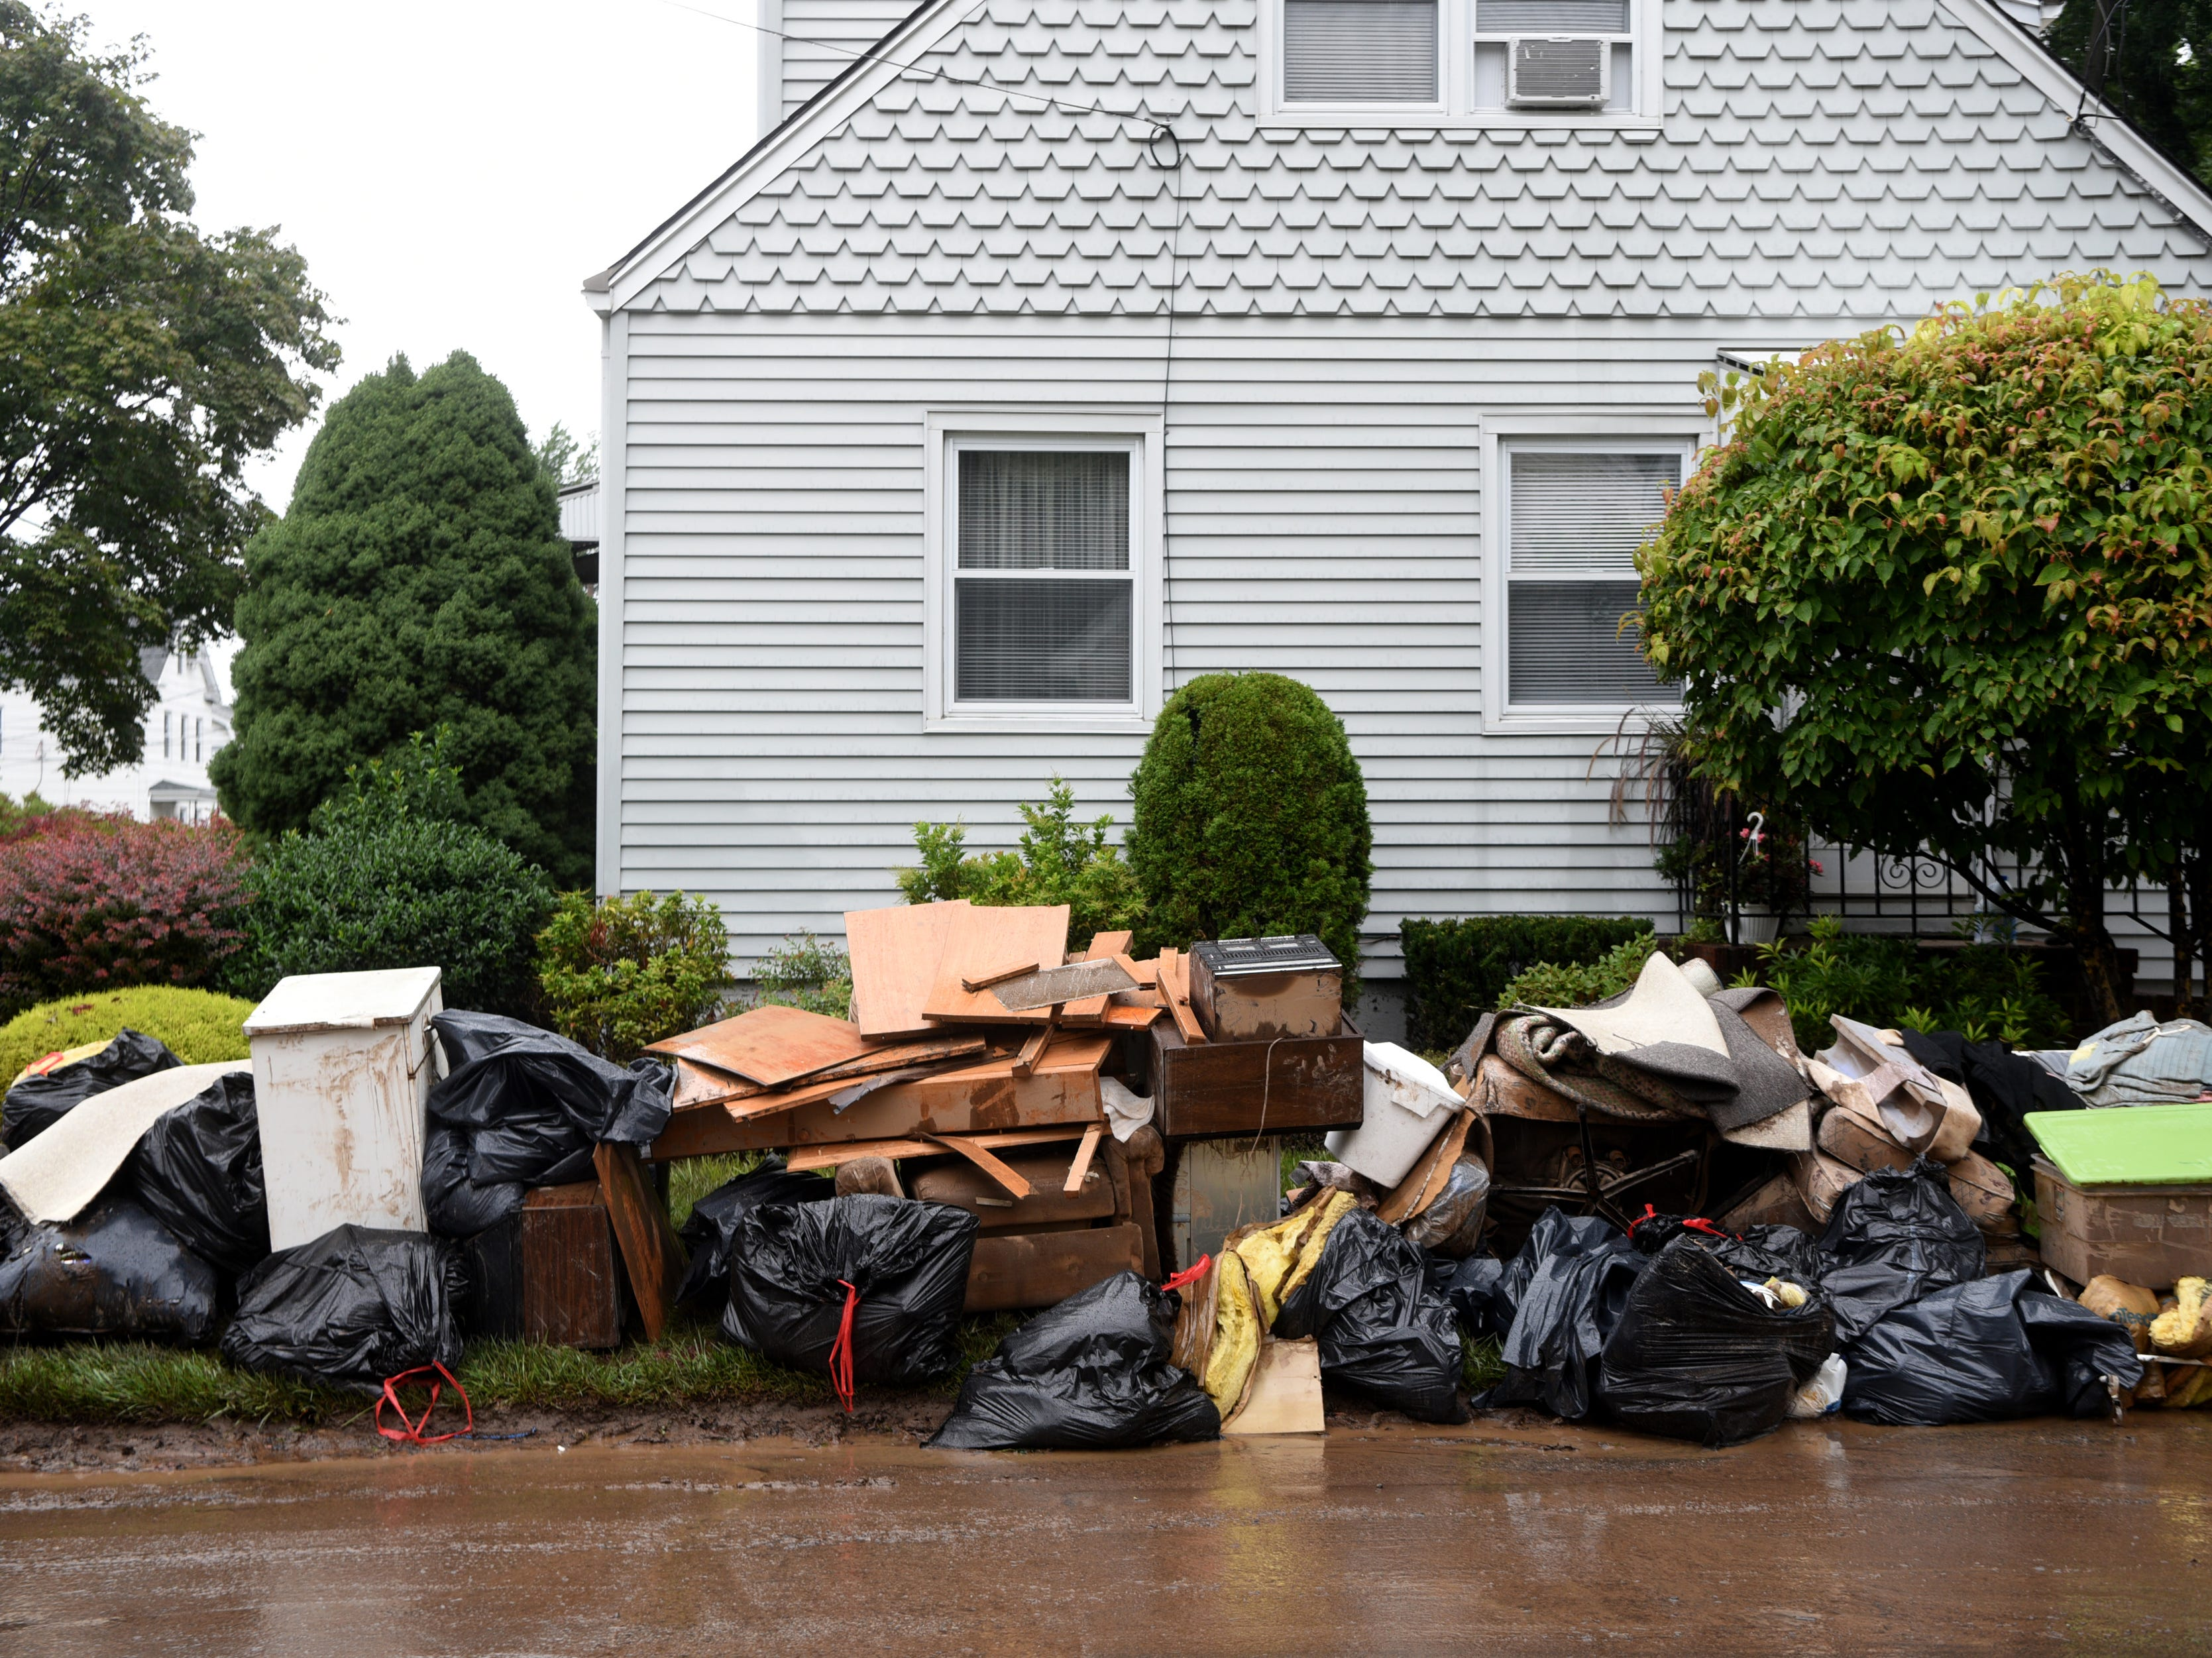 Items ruined in flooding are removed from a home on the corner of Ryle Ave. at the intersection of Harrison St. in Little Falls sit on the street on Monday, August 13, 2018. Flooding in the neighborhood near the Peckman River on Saturday is being called the worst since Hurricane Floyd.